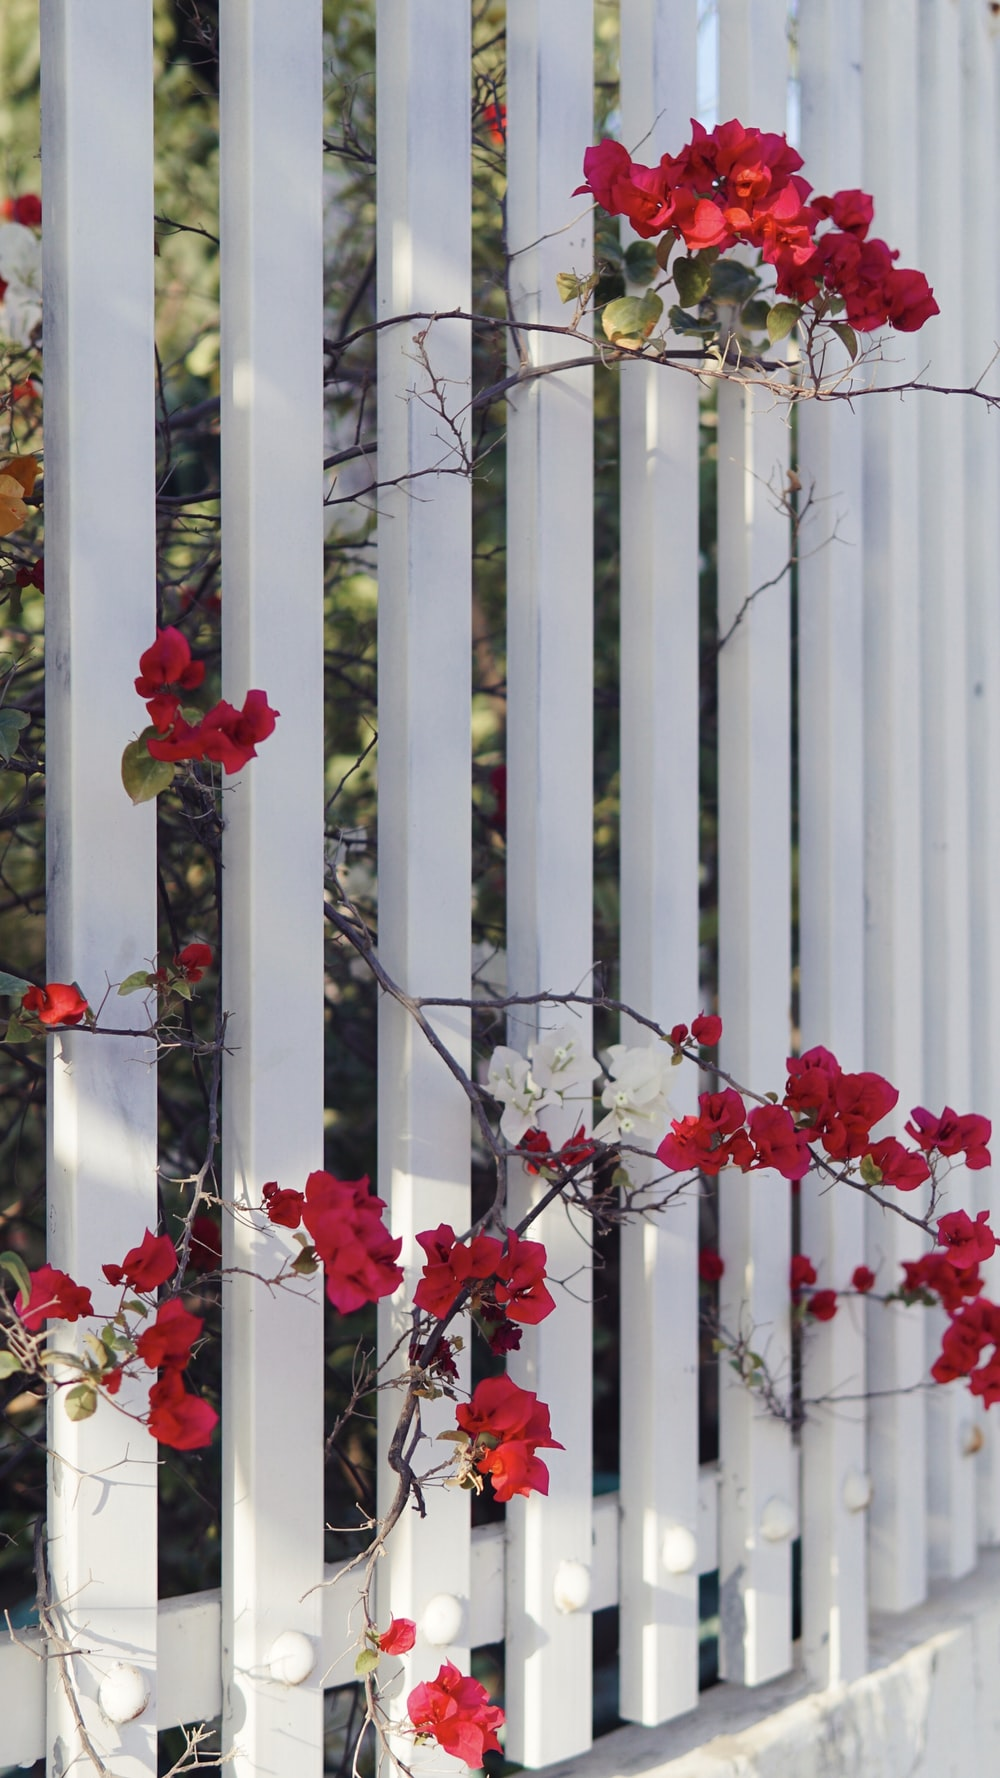 red flowers on white wooden fence